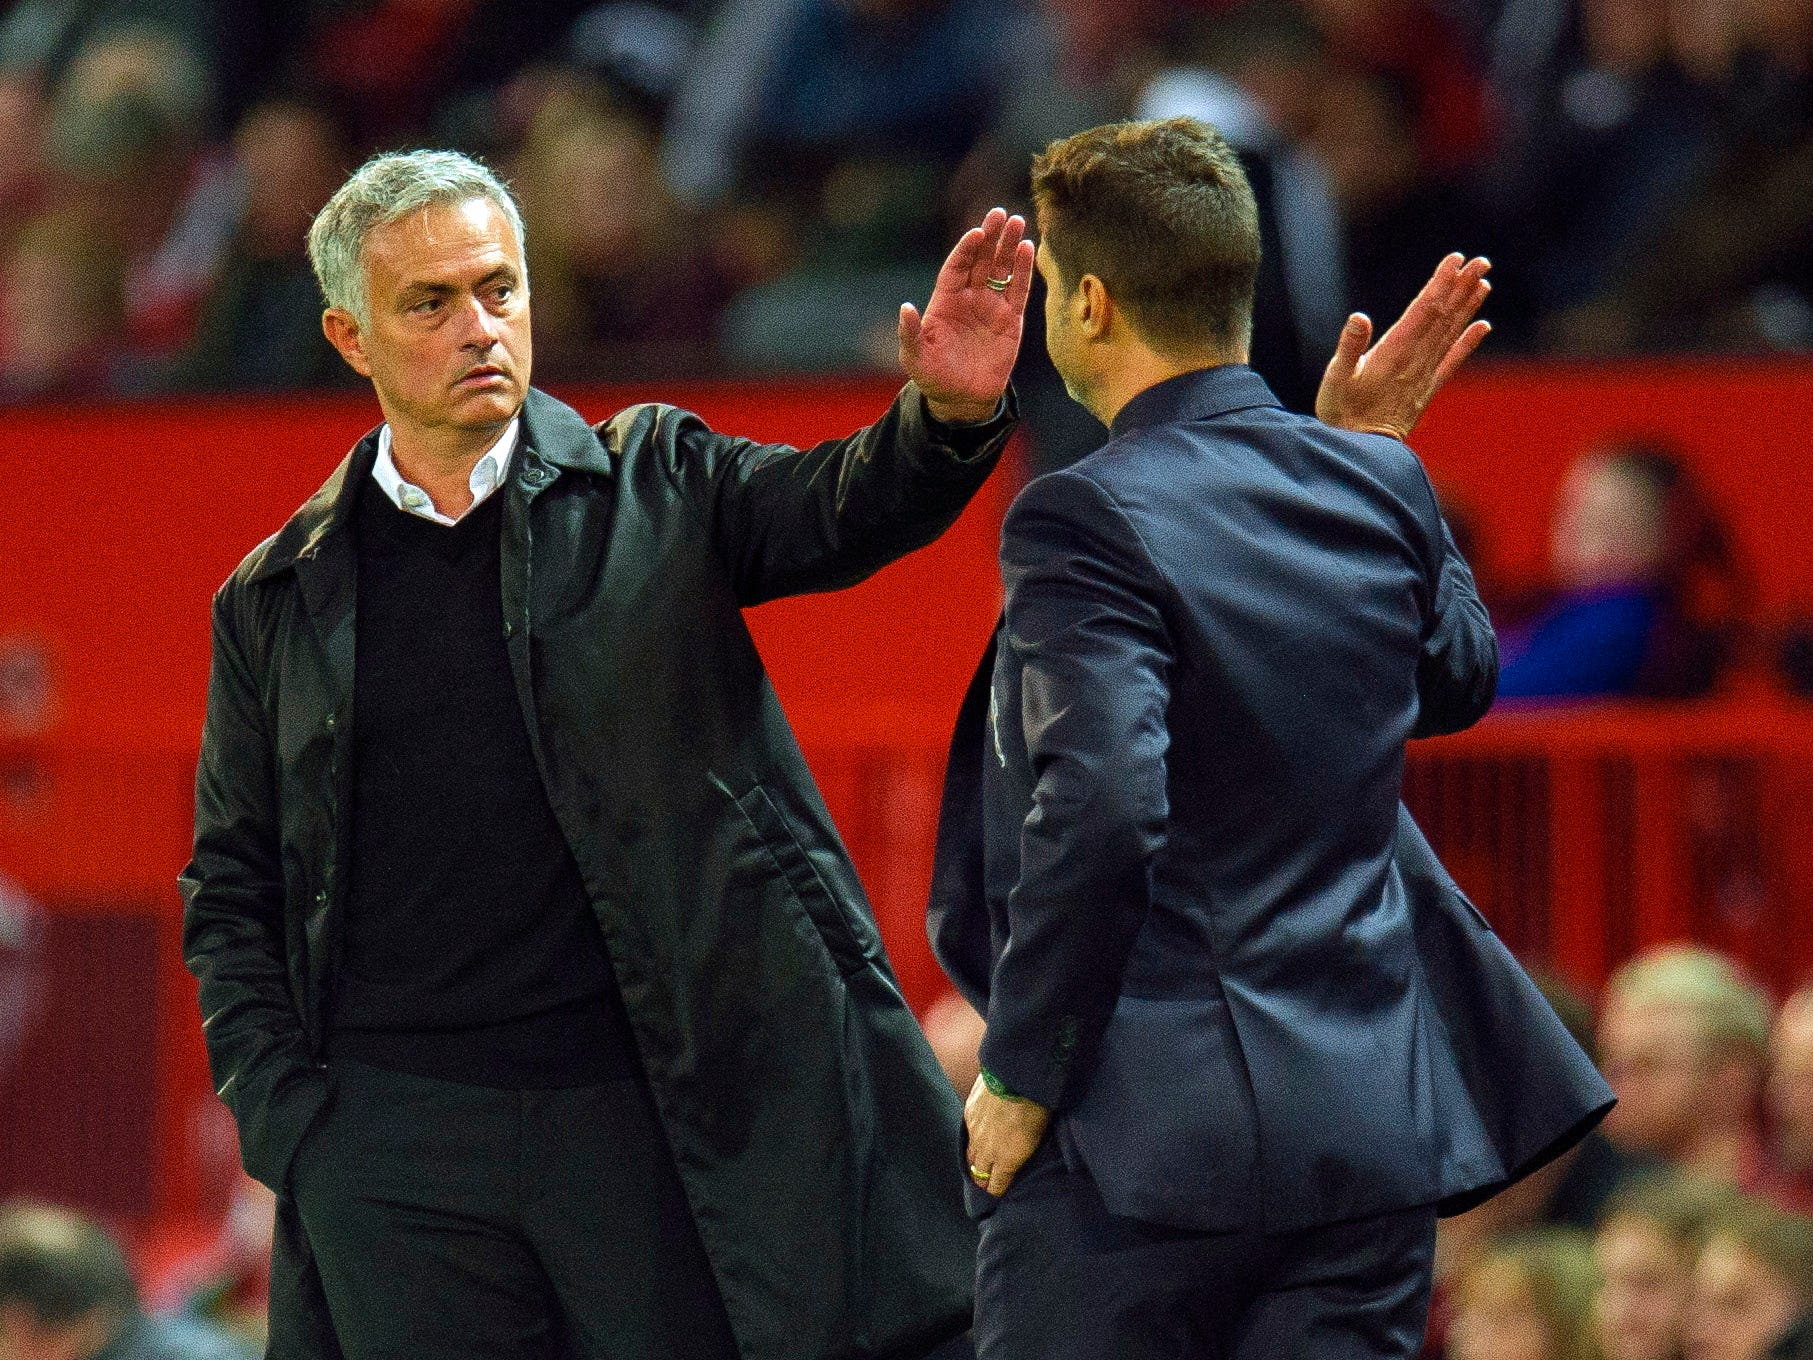 Manchester United manager Jose Mourinho (left) gives Tottenham Hotspur manager Mauricio Pochettino a high five during Tottenham's 3-0 win at Old Trafford.